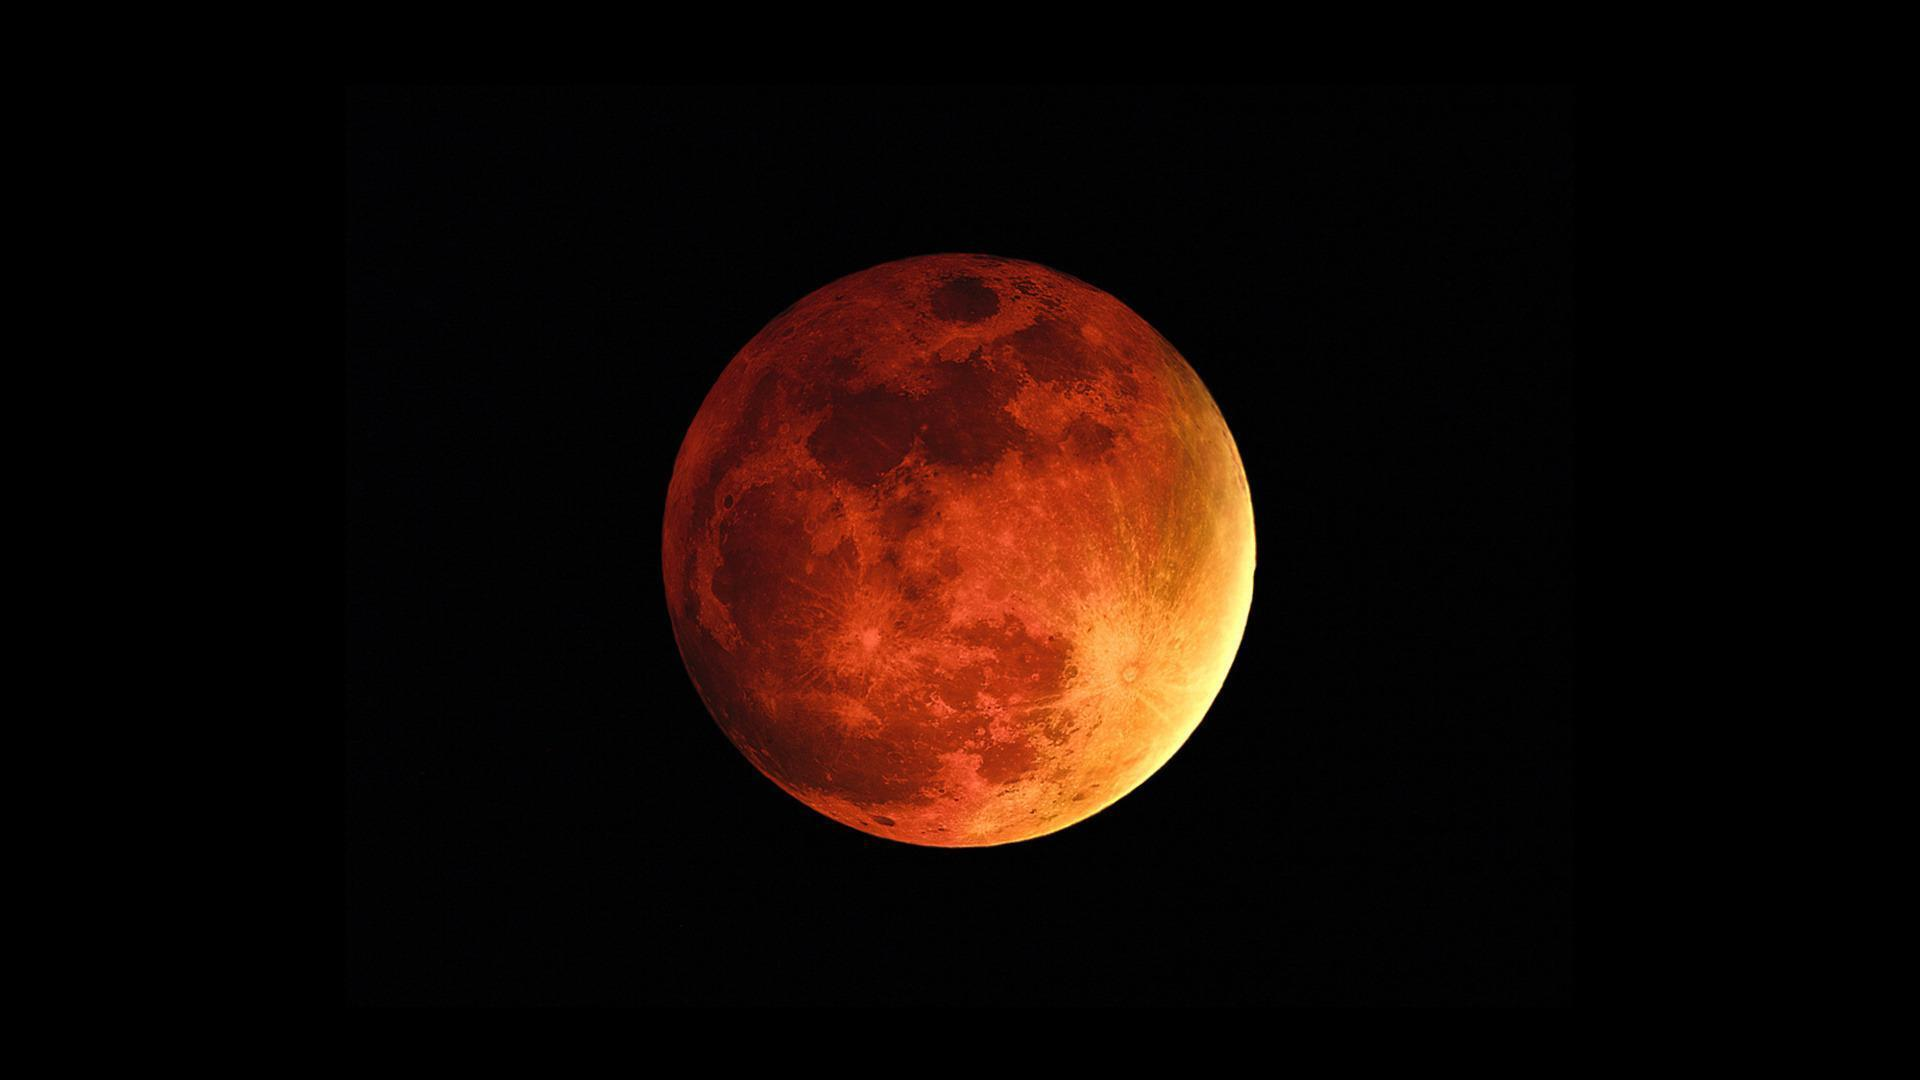 red moon images - photo #3